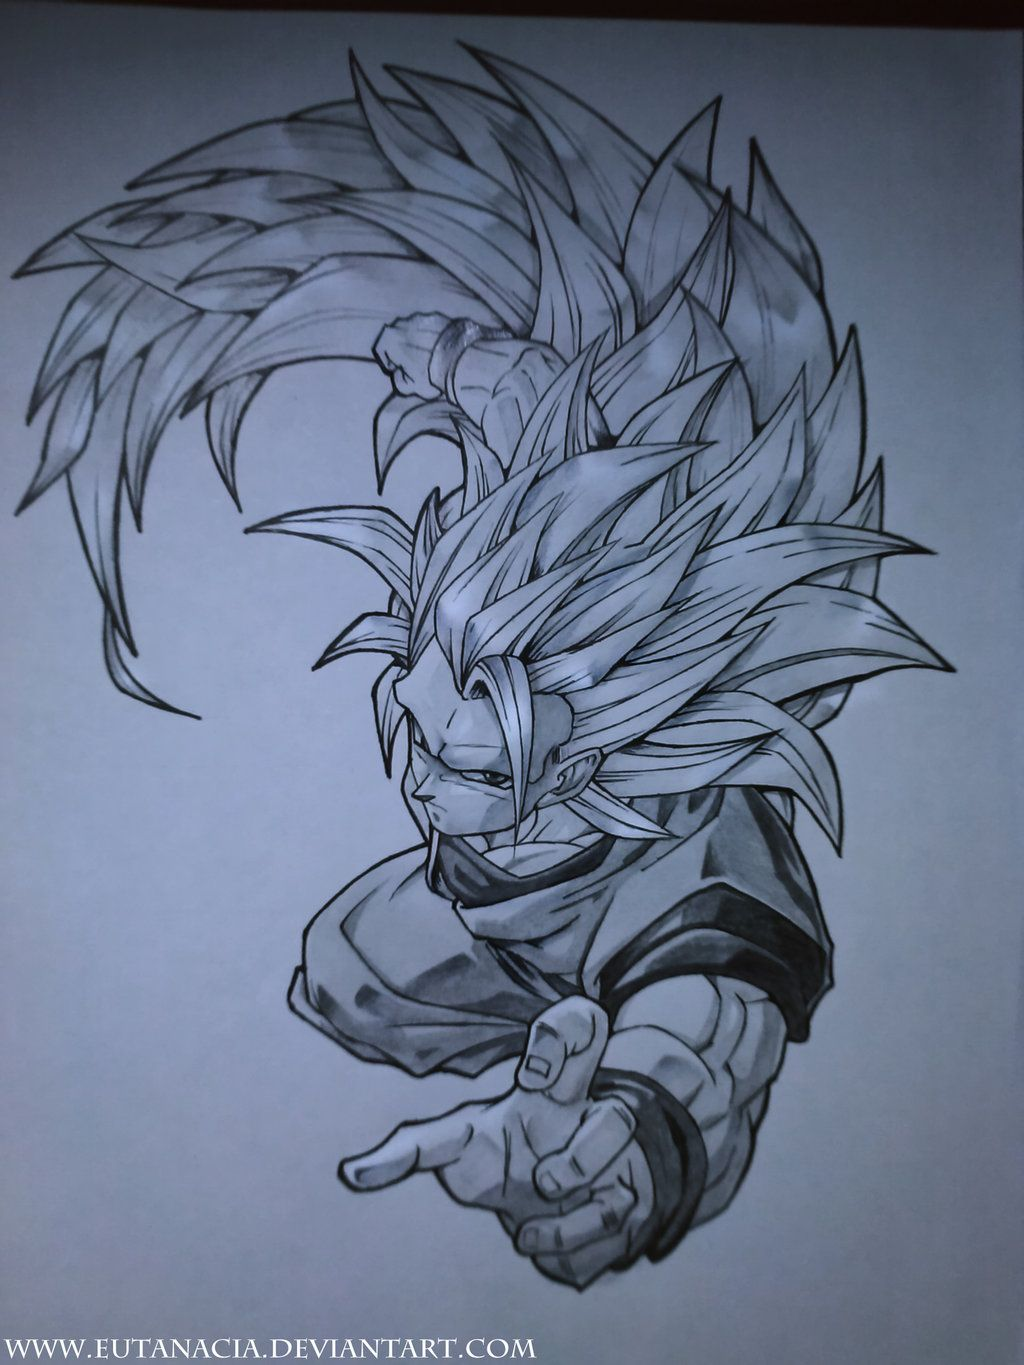 FAN ART: Dragon Ball Z: Dibujo de Goku [Peleando] por EUTANACIA ...